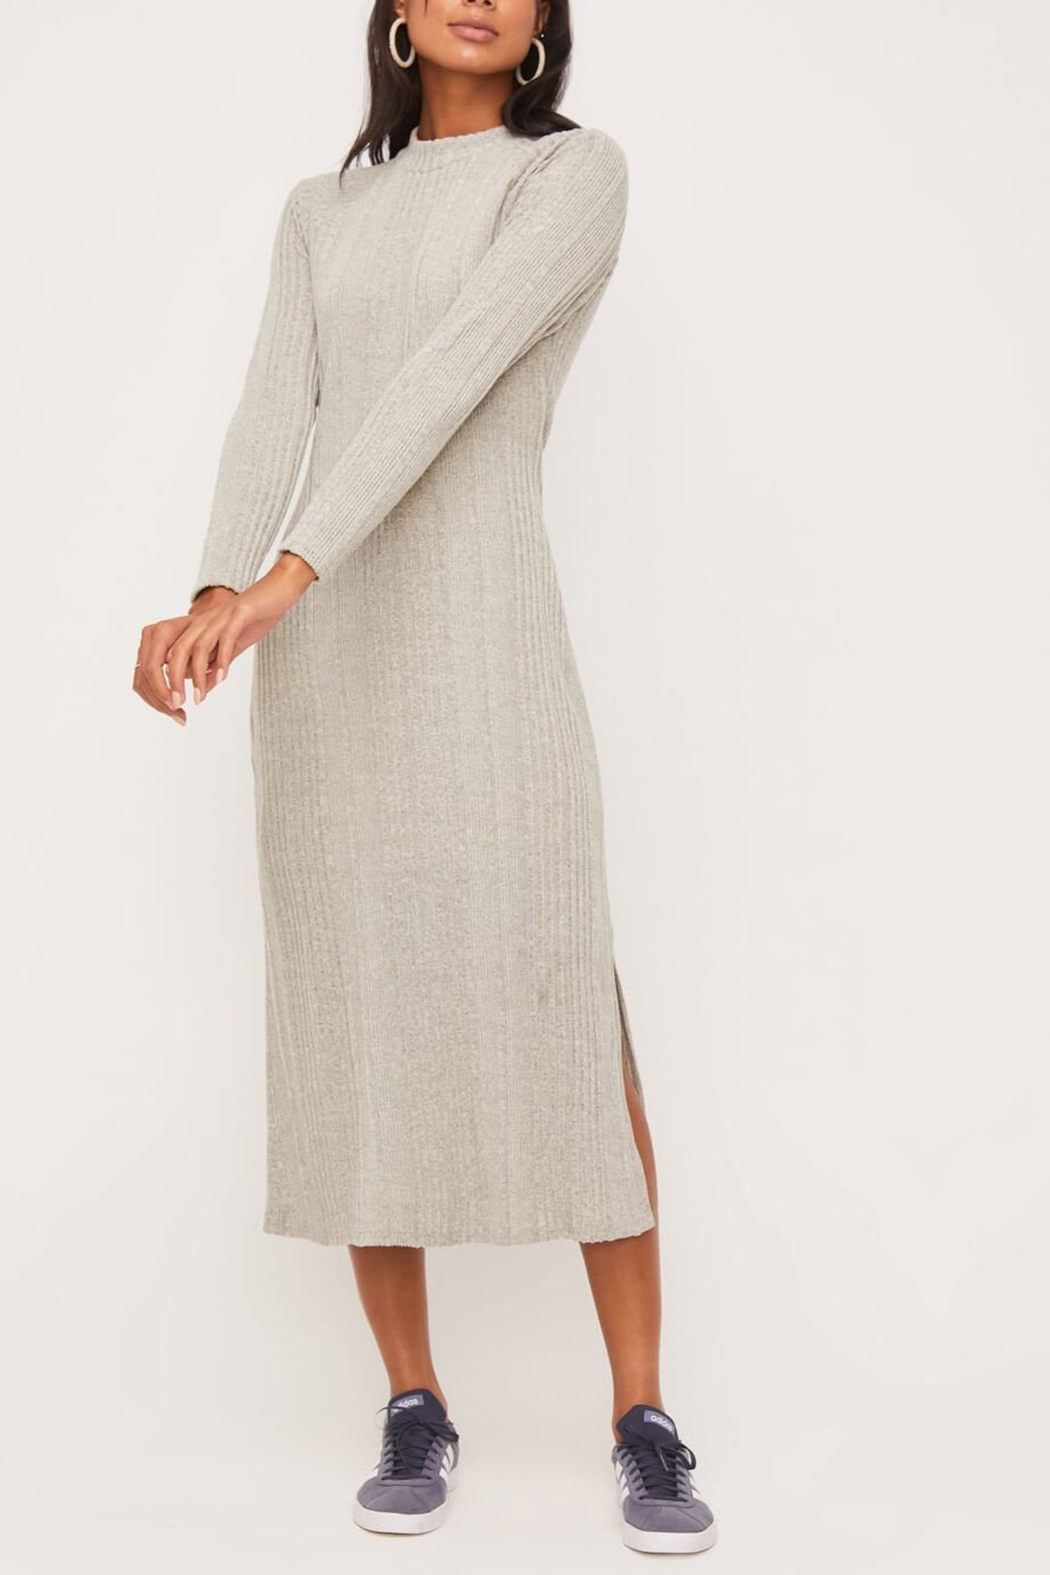 Lush Clothing  Mock-Neck Knit Dress - Back Cropped Image